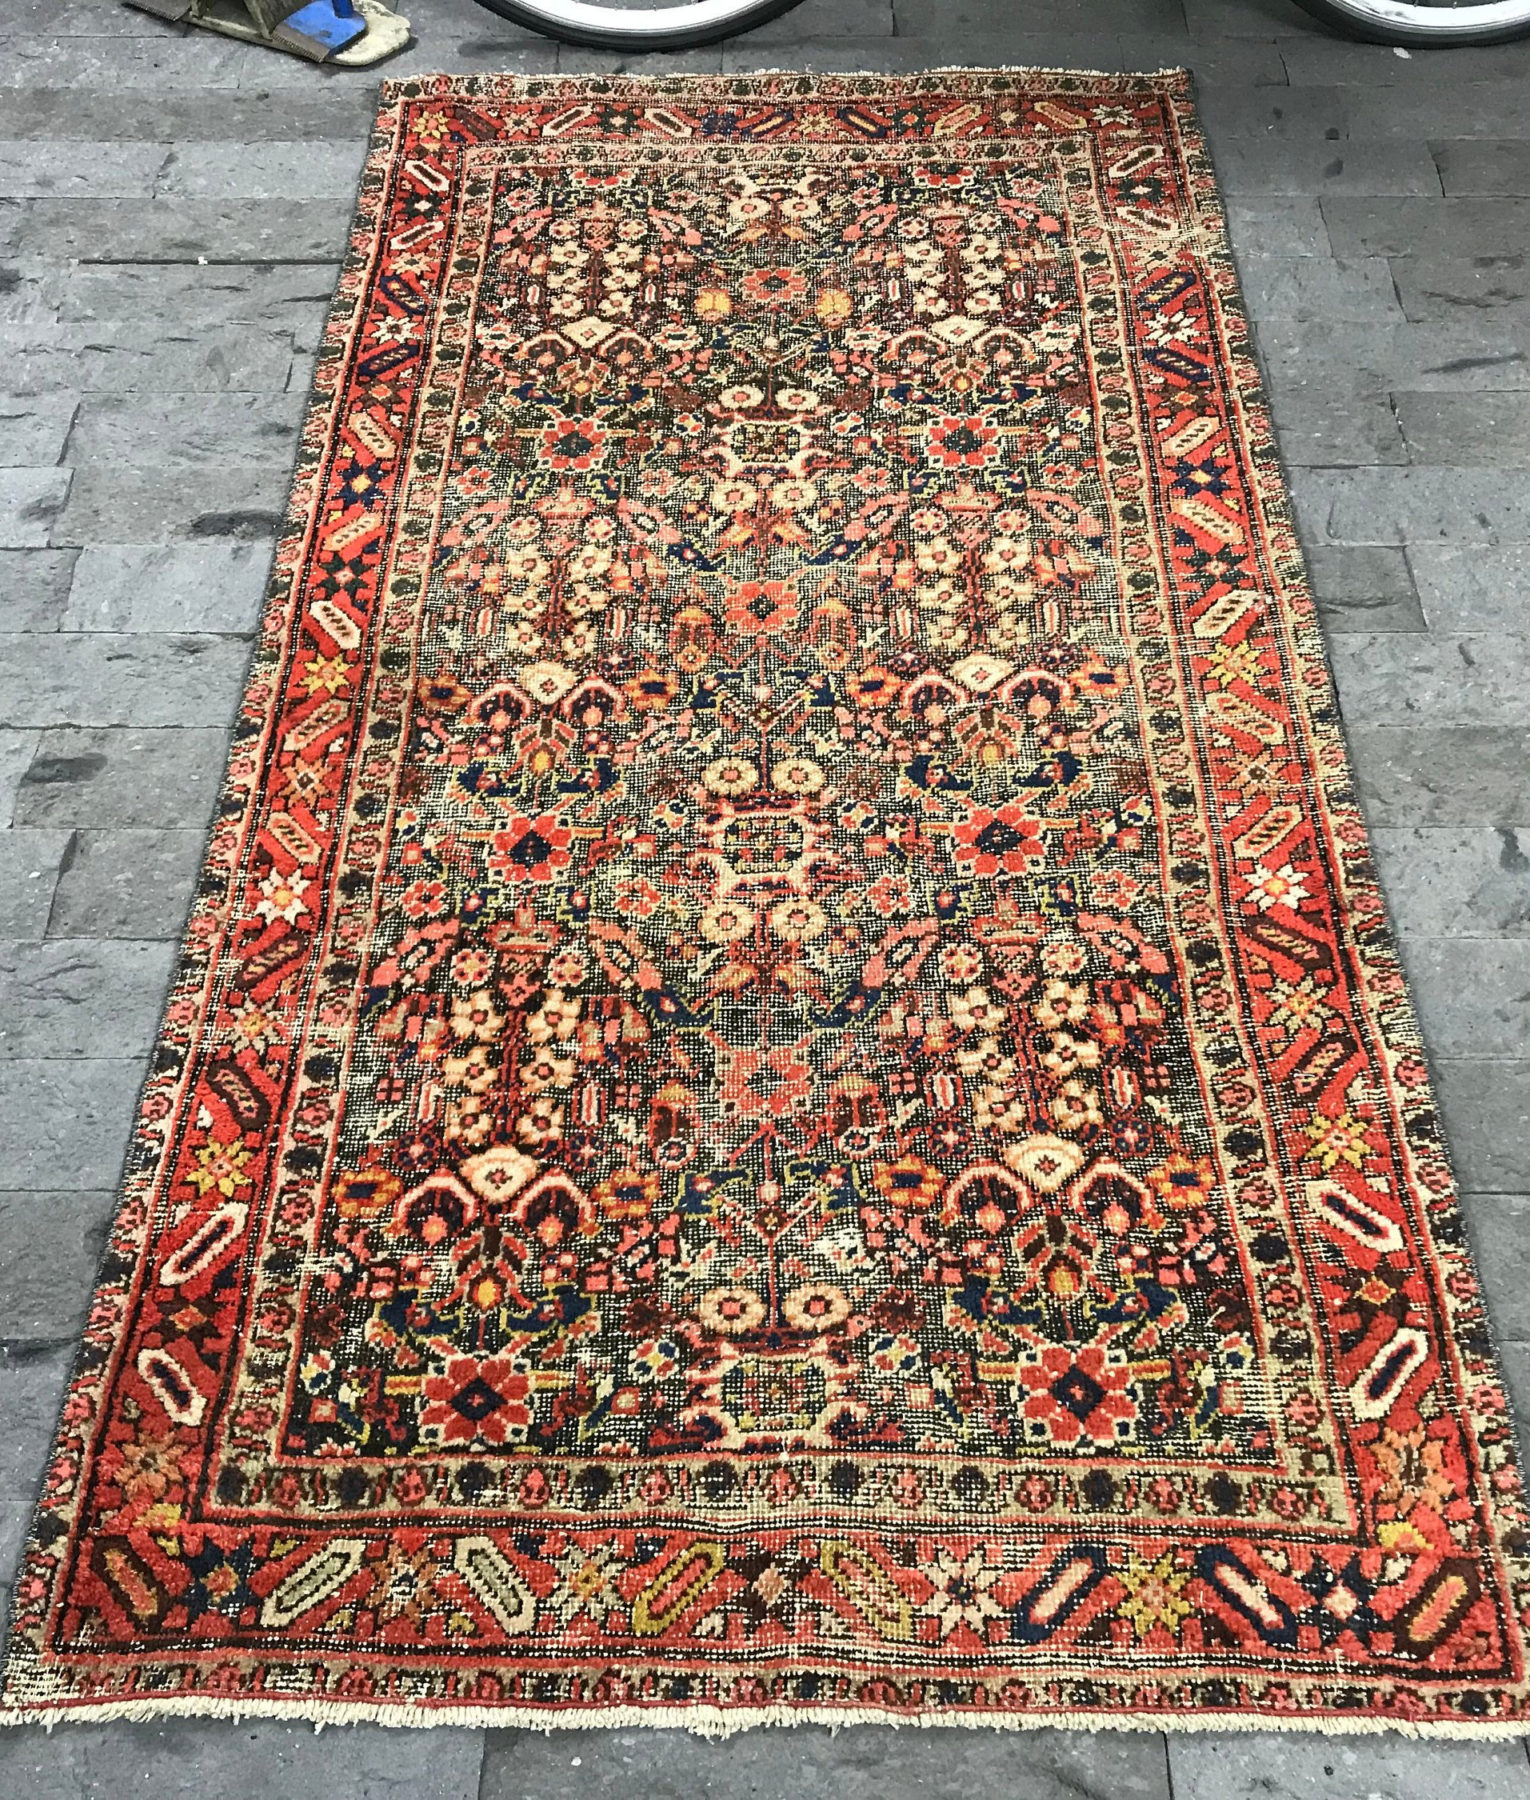 Persian Rug 3 4x6 5ft Vintage Mute Red Rug Distressed Oushak Rug Turkish Rug Big Runner Rug Pink Turkish Rug Overdyed Lowpile Rug